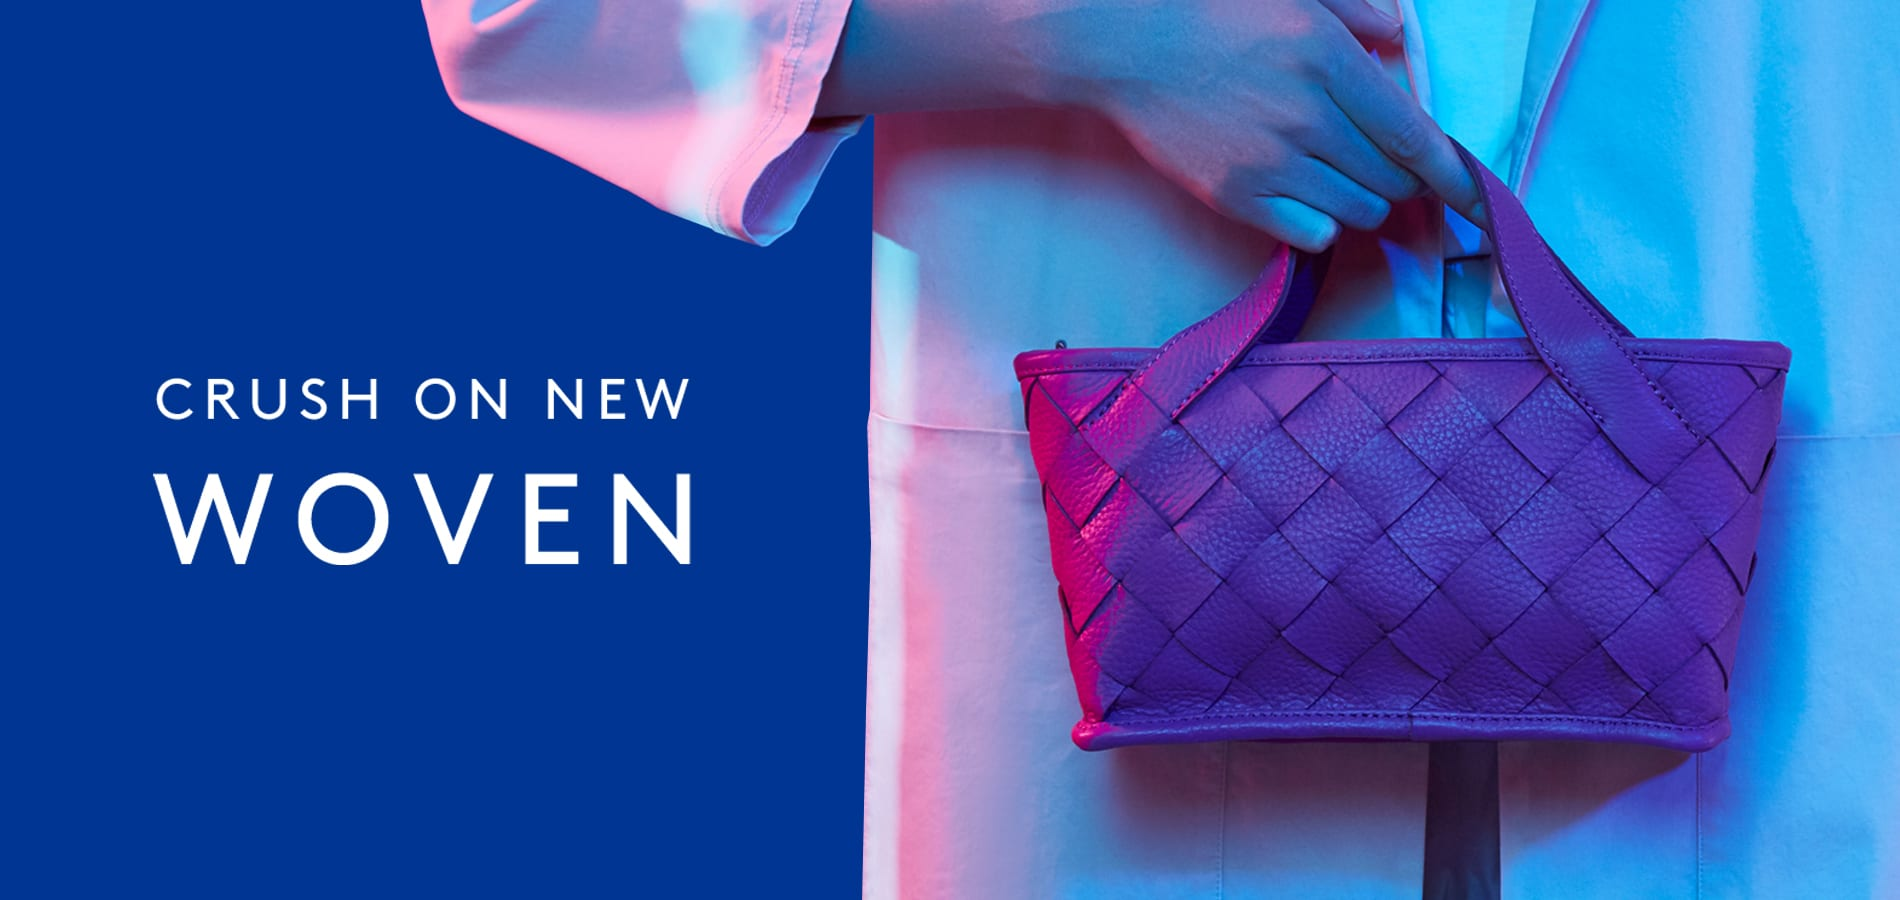 LUMI Woven collection includes styles from classic daily essentials to business bags.